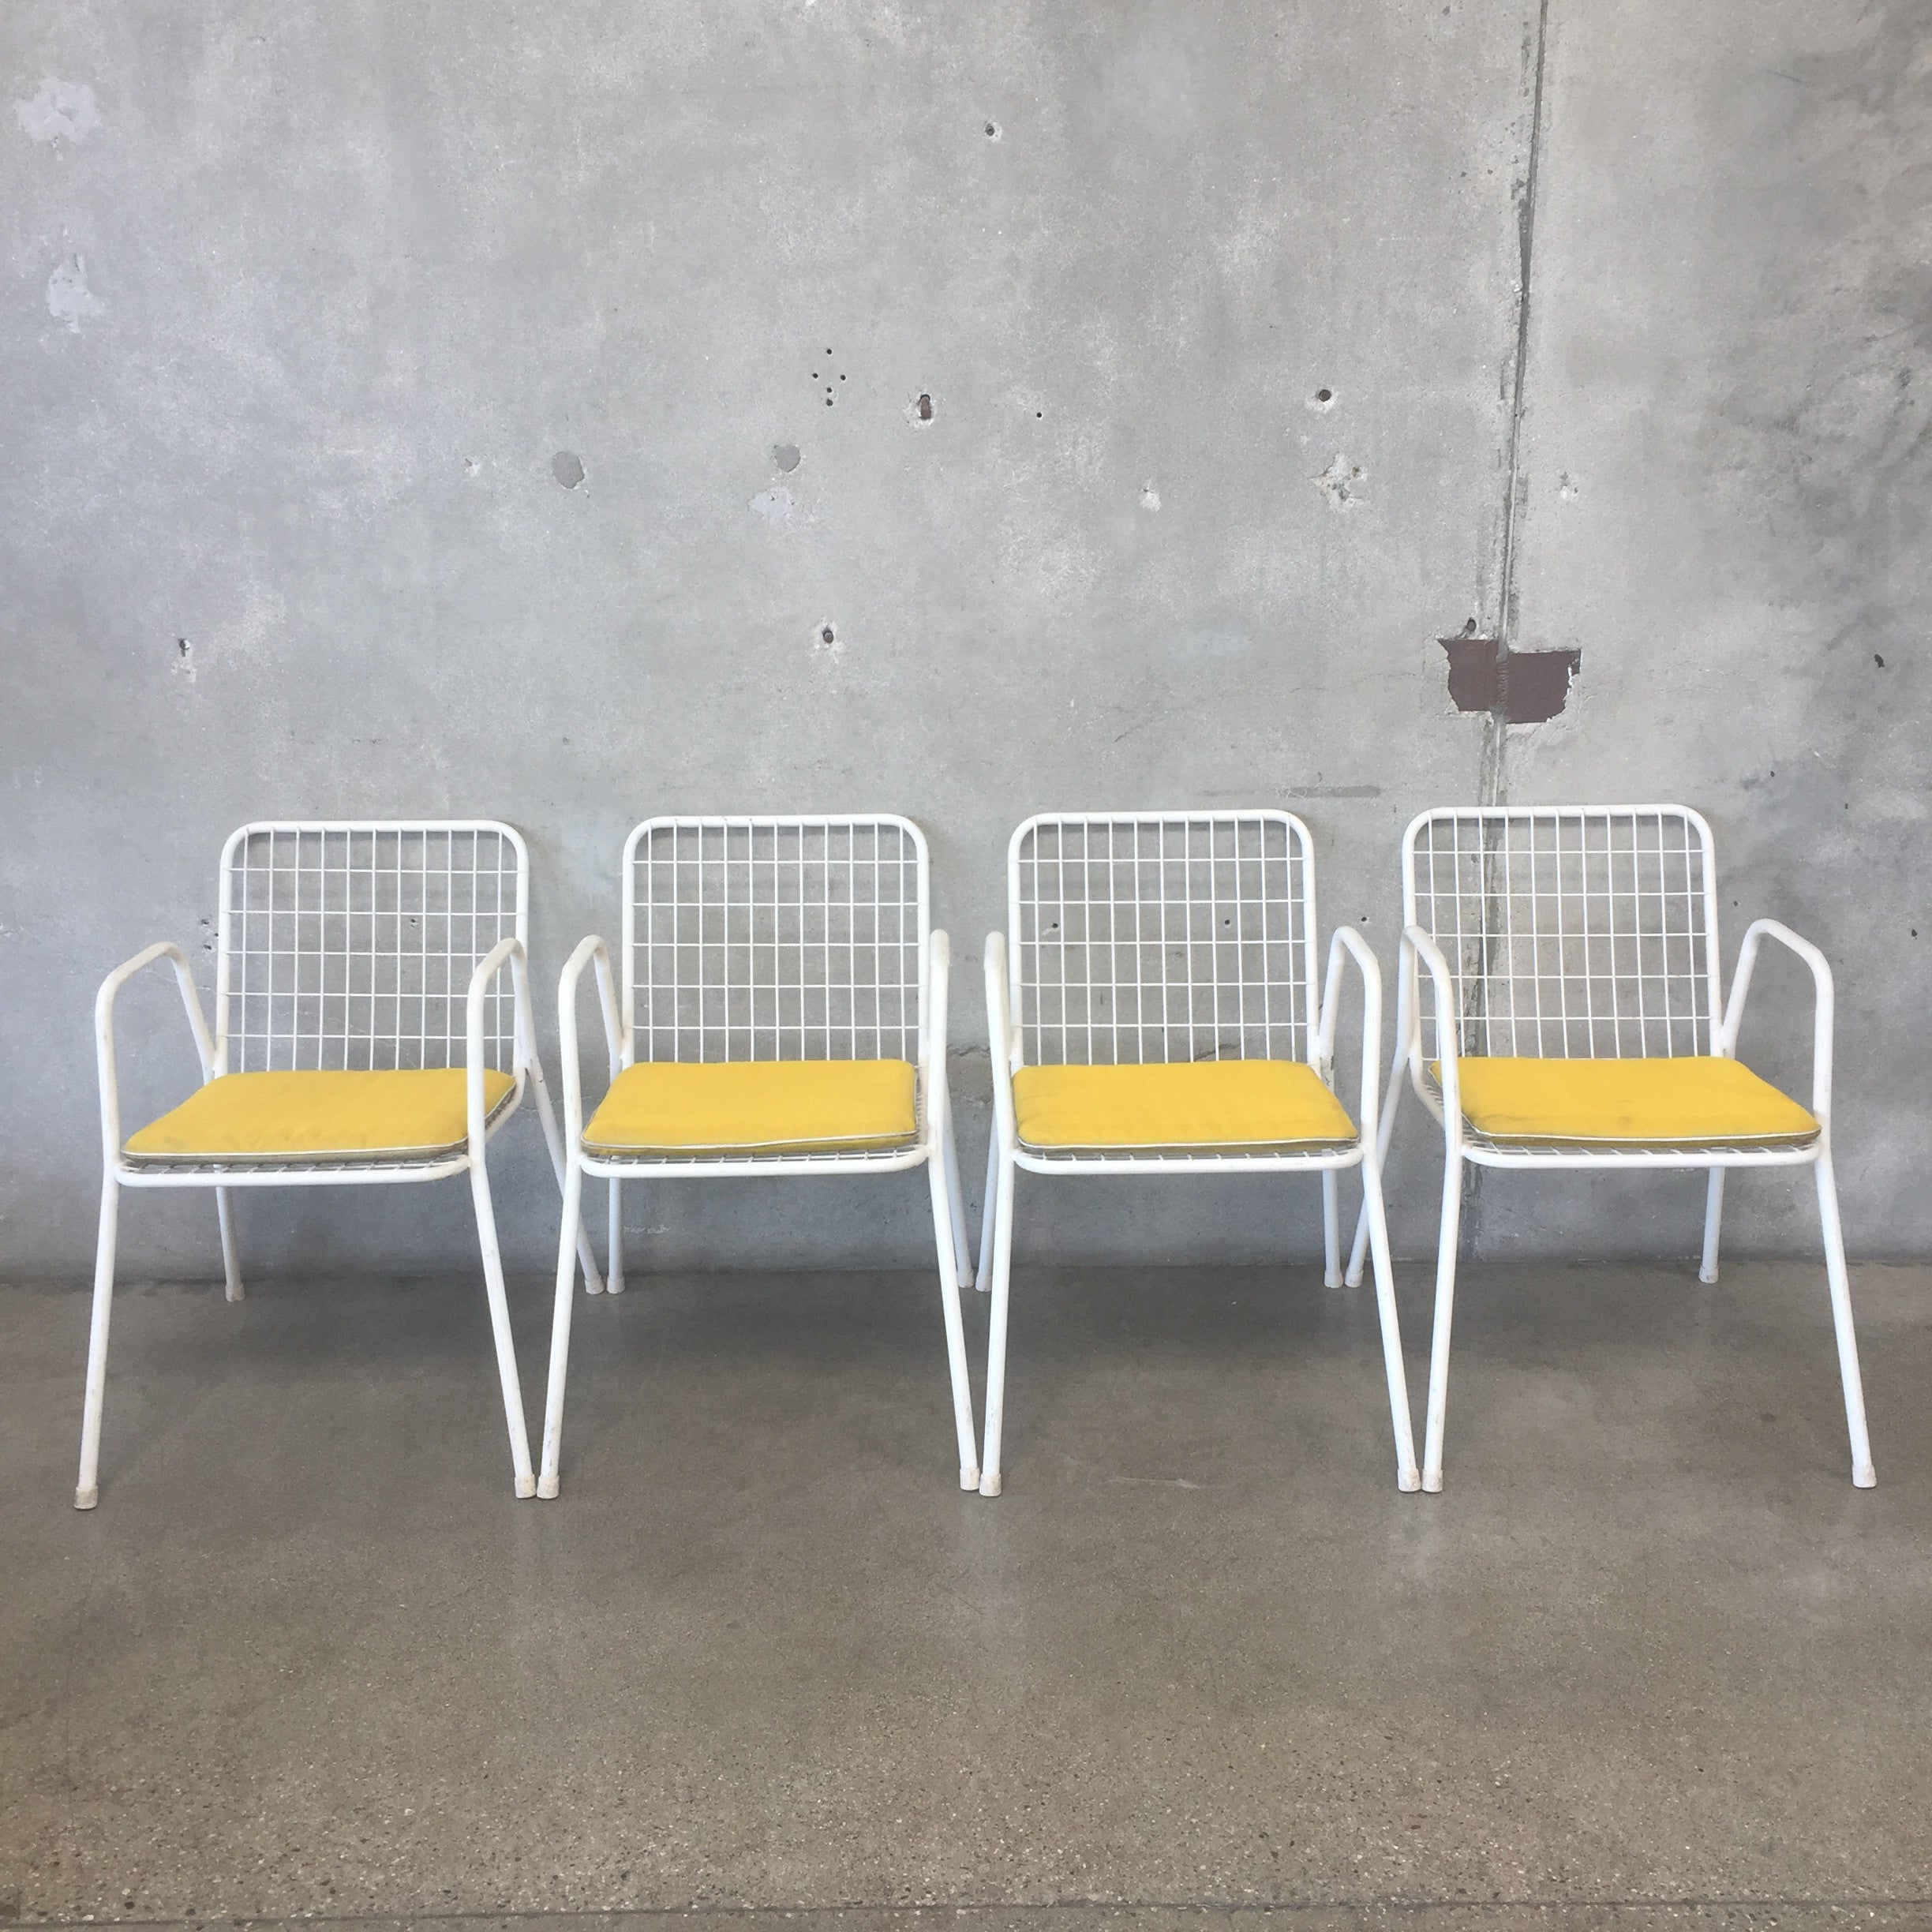 Vintage Patio Chairs by EMU Italy – UrbanAmericana